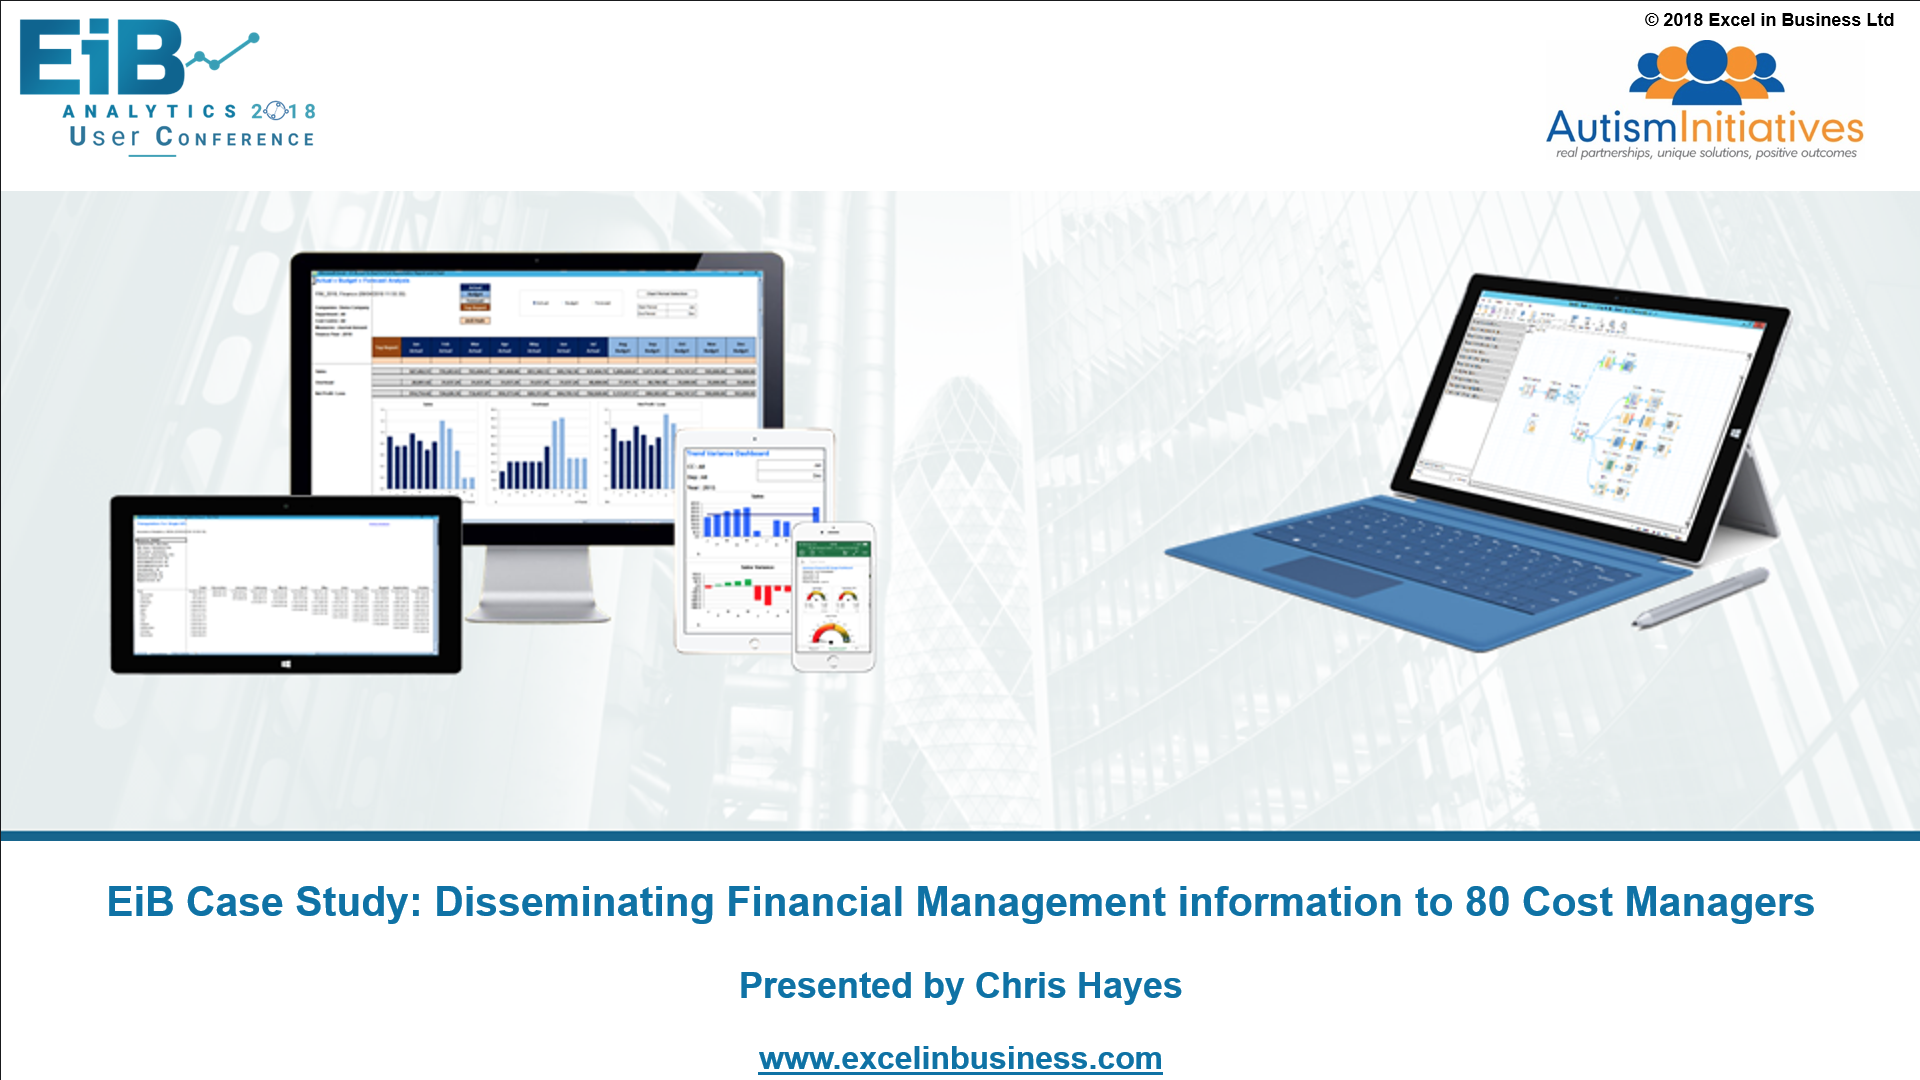 4.2 - Finance Stream - Disseminating Financial Management information to 80 Cost Managers - Chris Hayes